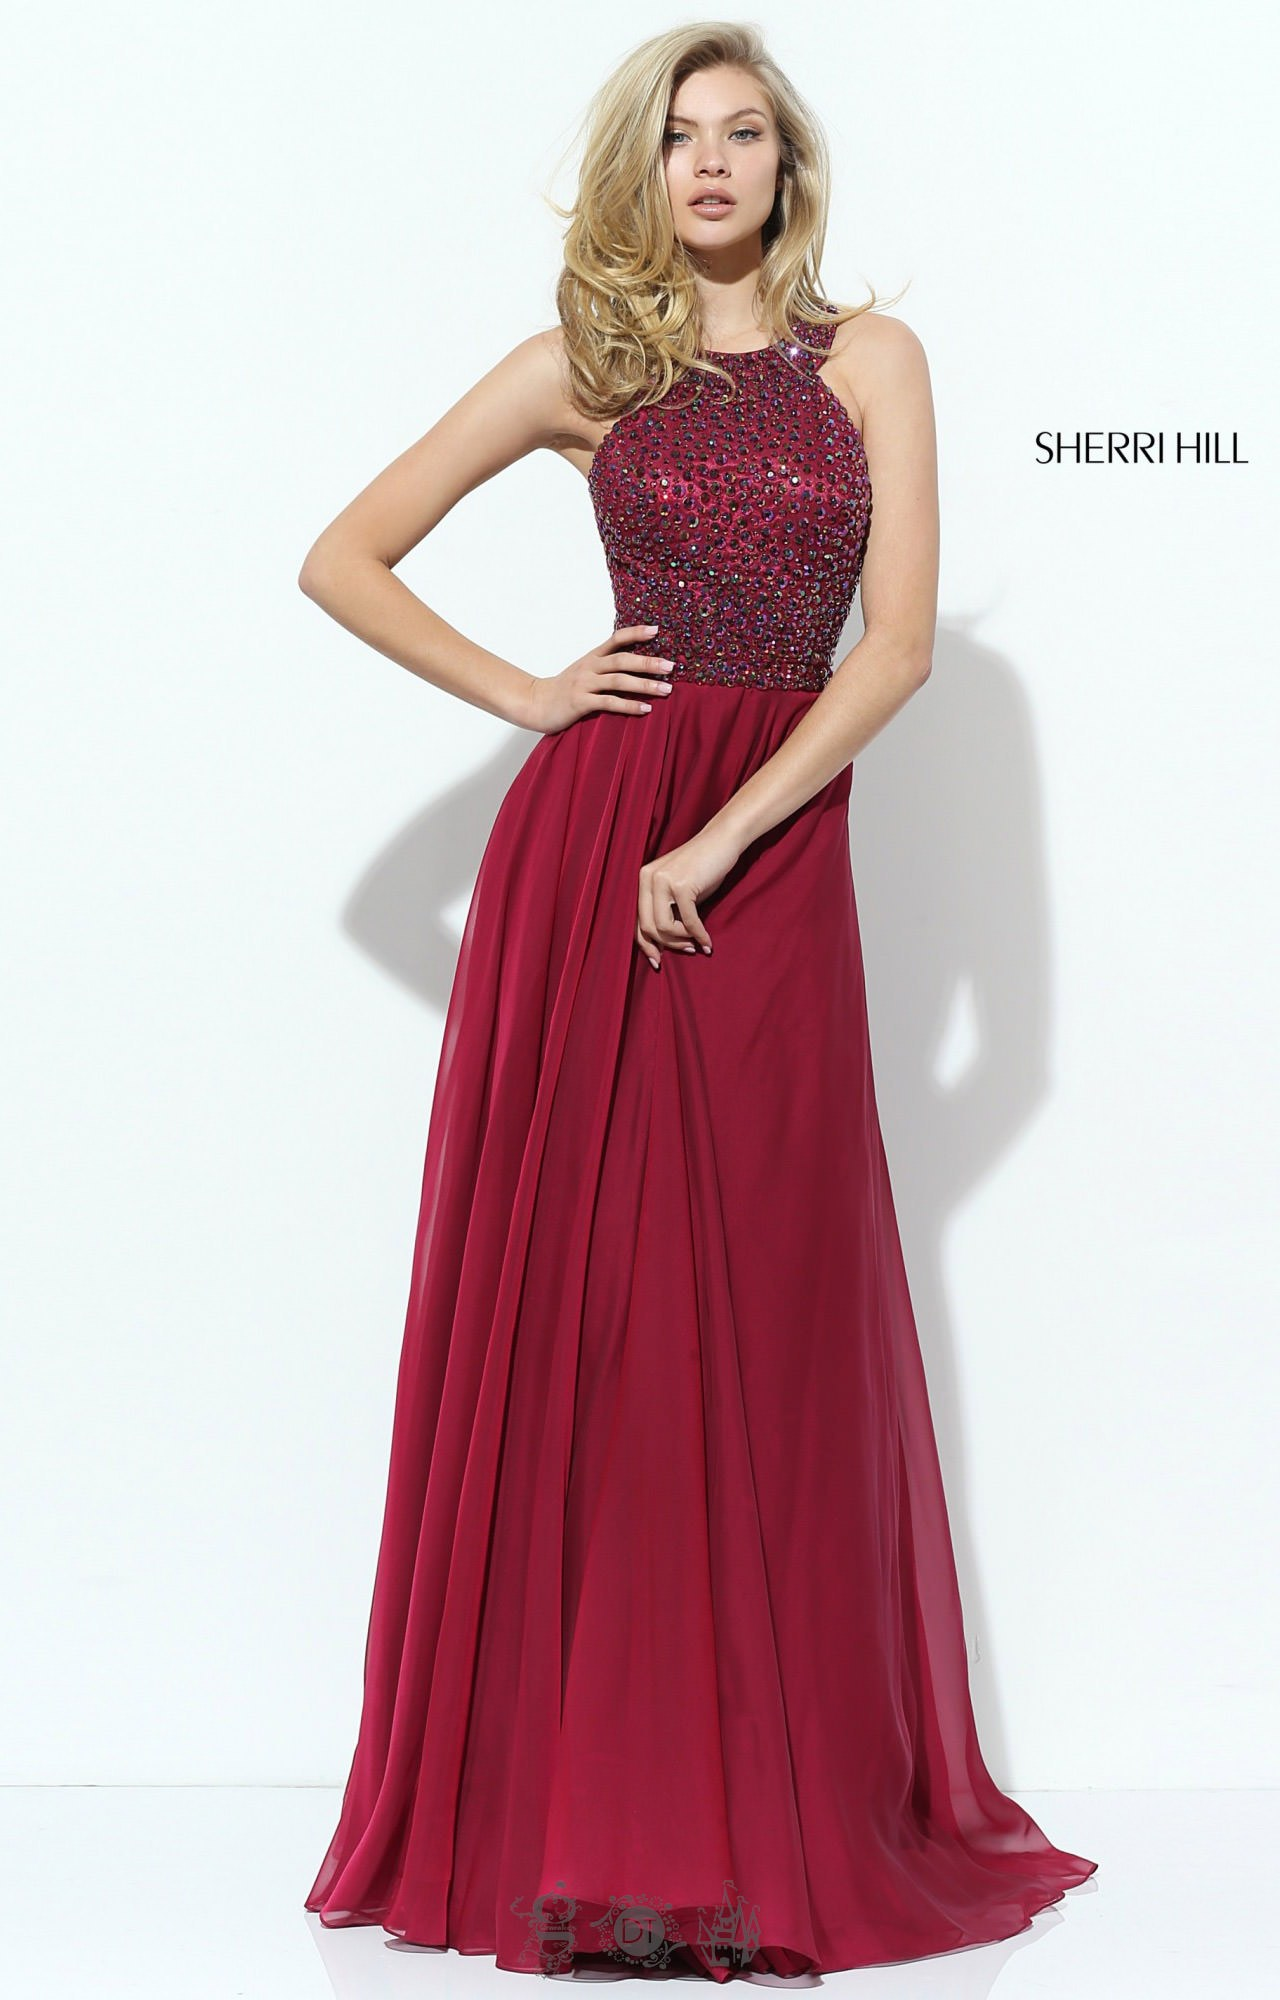 Sherri Hill 50615 Beaded Halter Chiffon Prom Dress